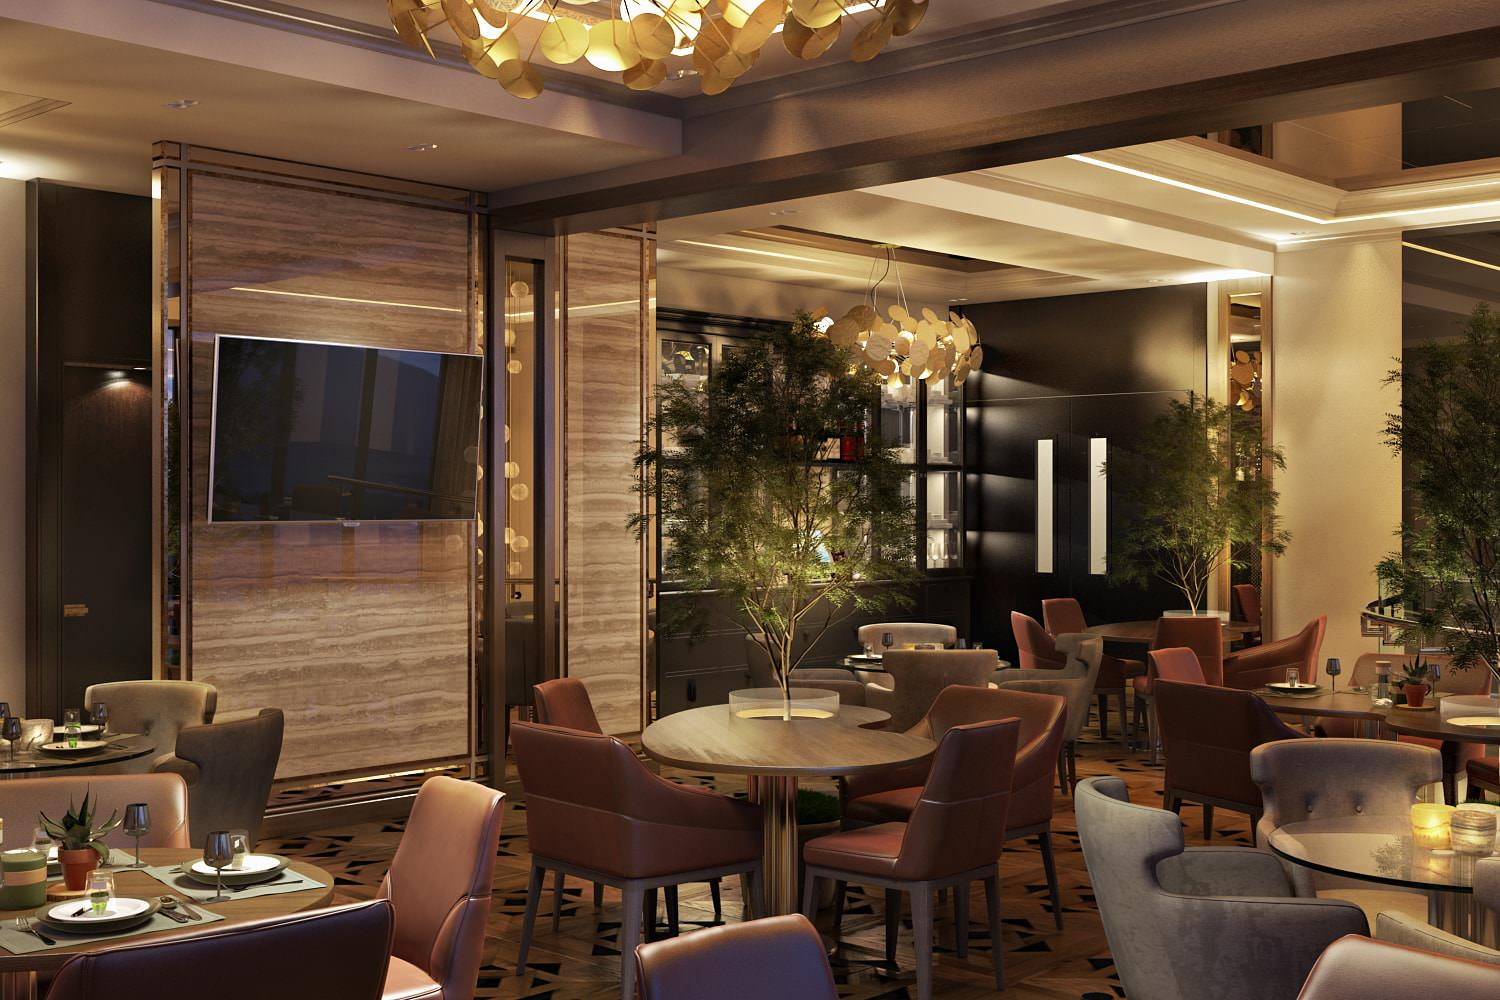 An Impactful Hotel Rendering: Restaurant For Guests' Comfort View01